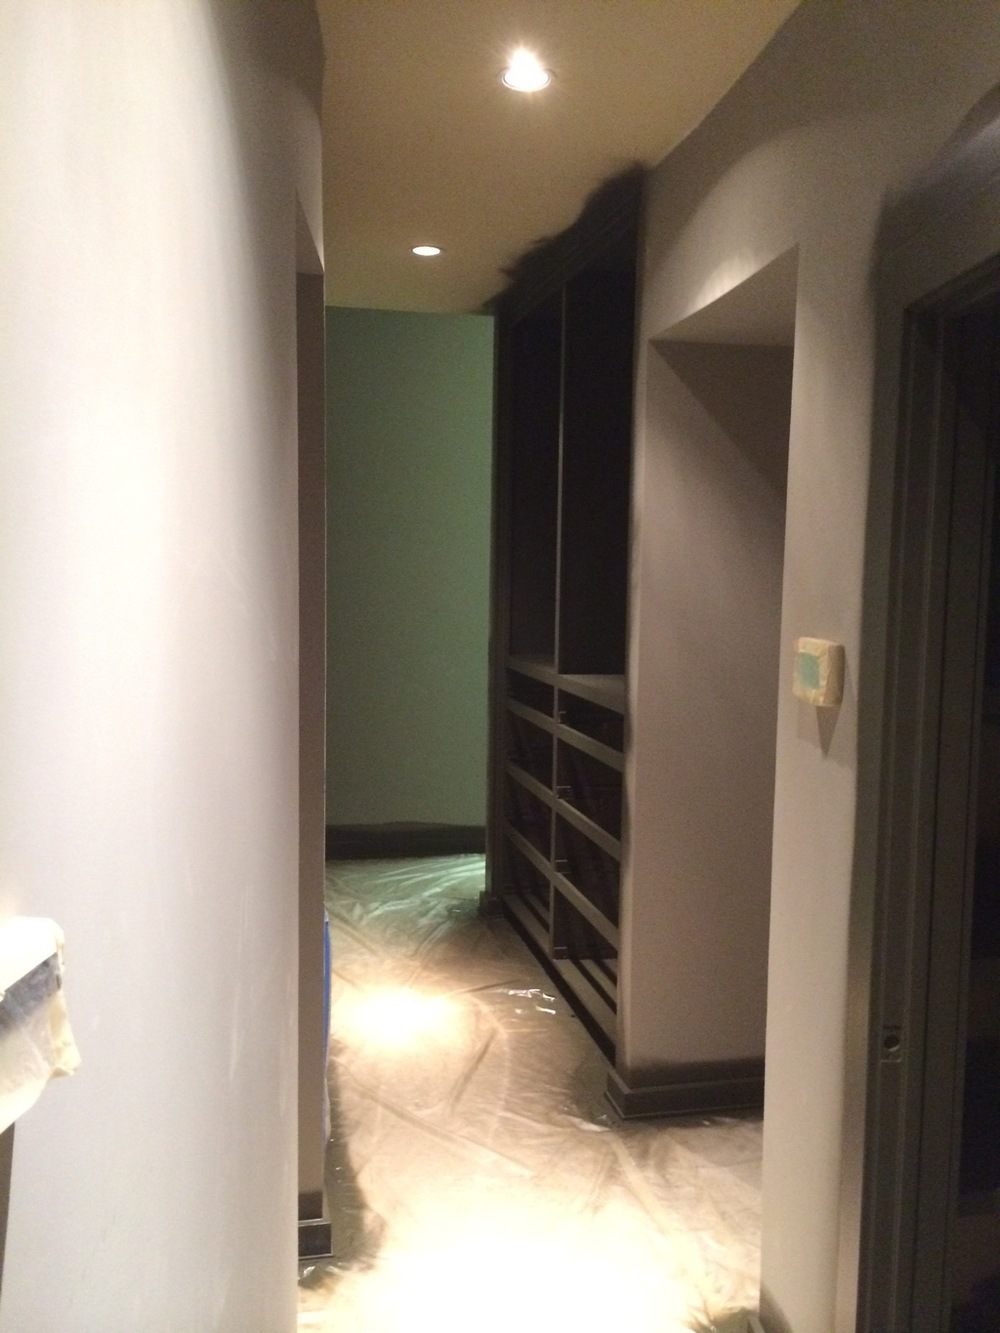 Passage to Dressing Room